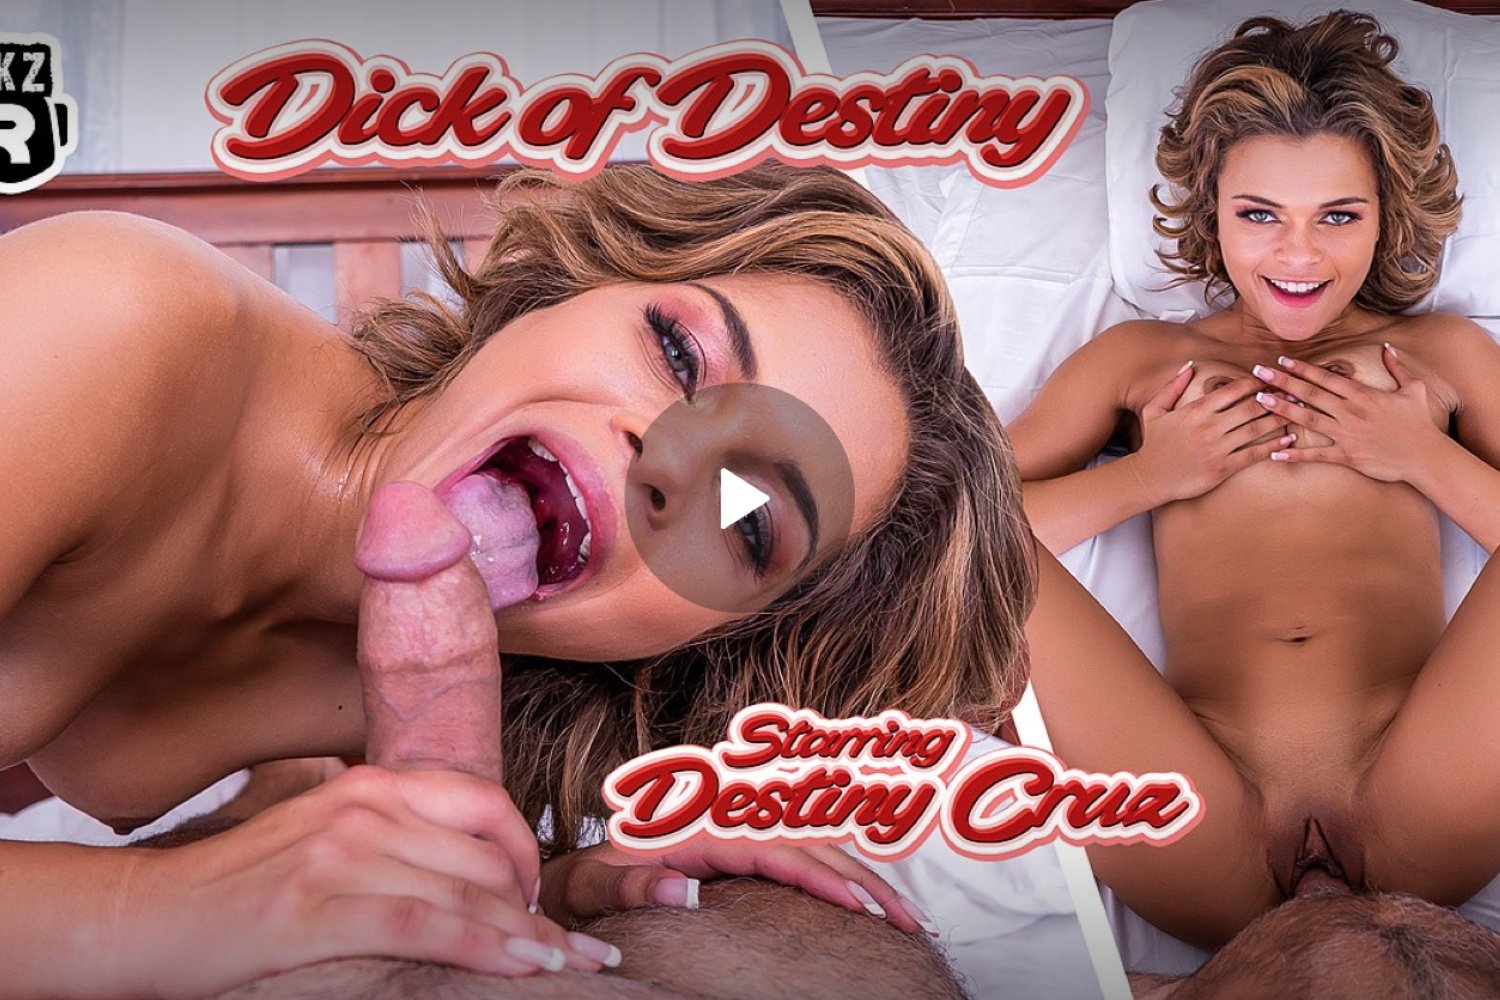 Dick of Destiny - Destiny Cruz VR Porn - Destiny Cruz Virtual Reality Porn